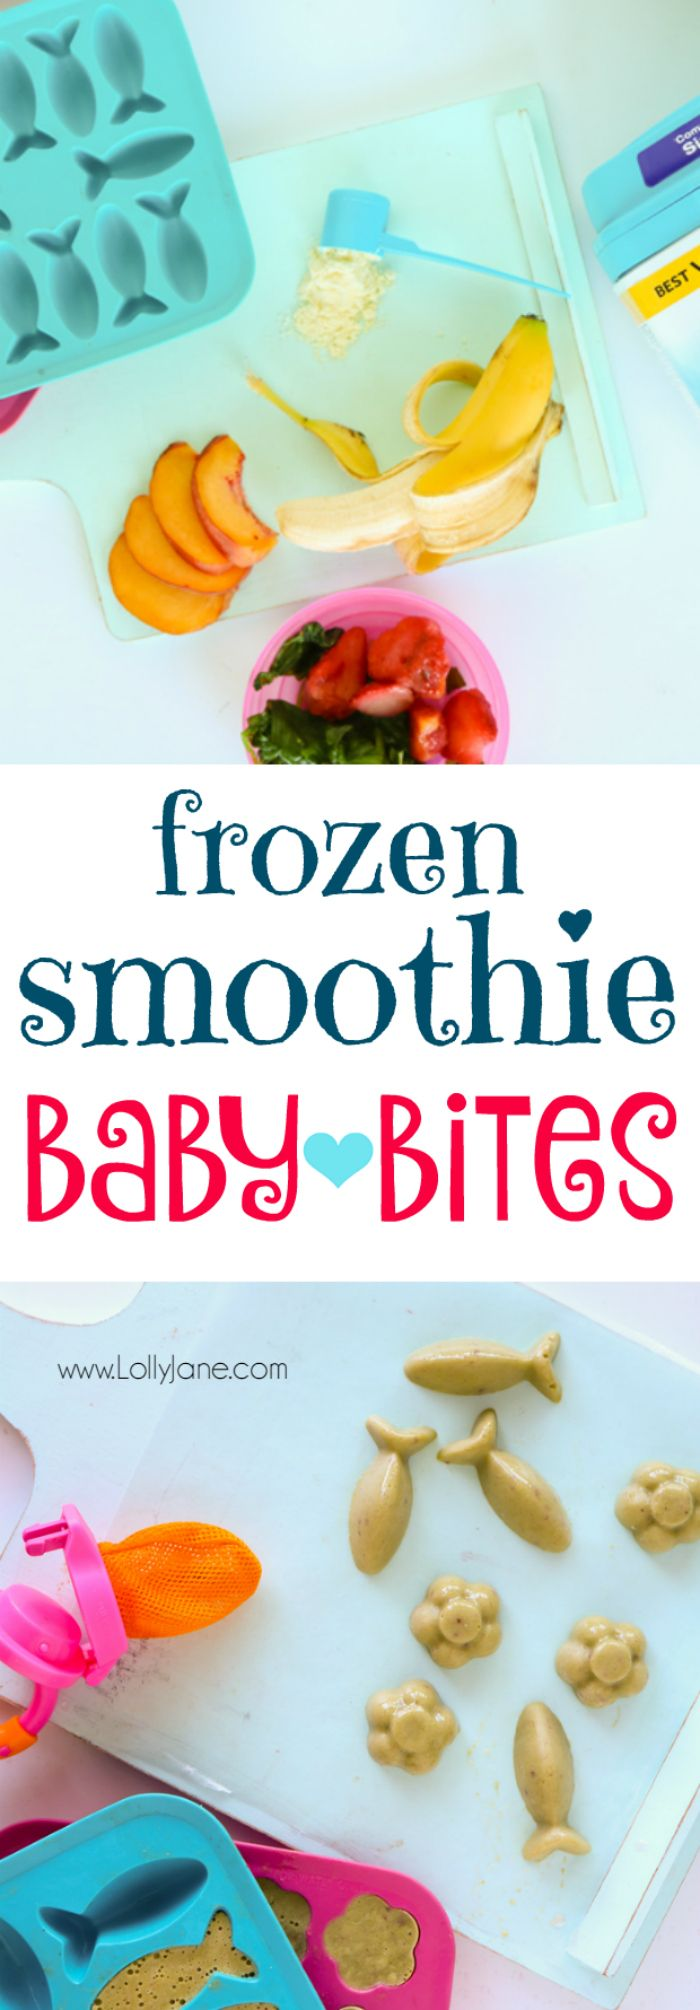 Make your own batch of frozen smoothie baby bites. Packed with veggies + fruits plus a few scoops of formula for added nutrition! Just blend & freeze then pop into a fresh food feeder and let baby go to town... also great for sore teething gums!